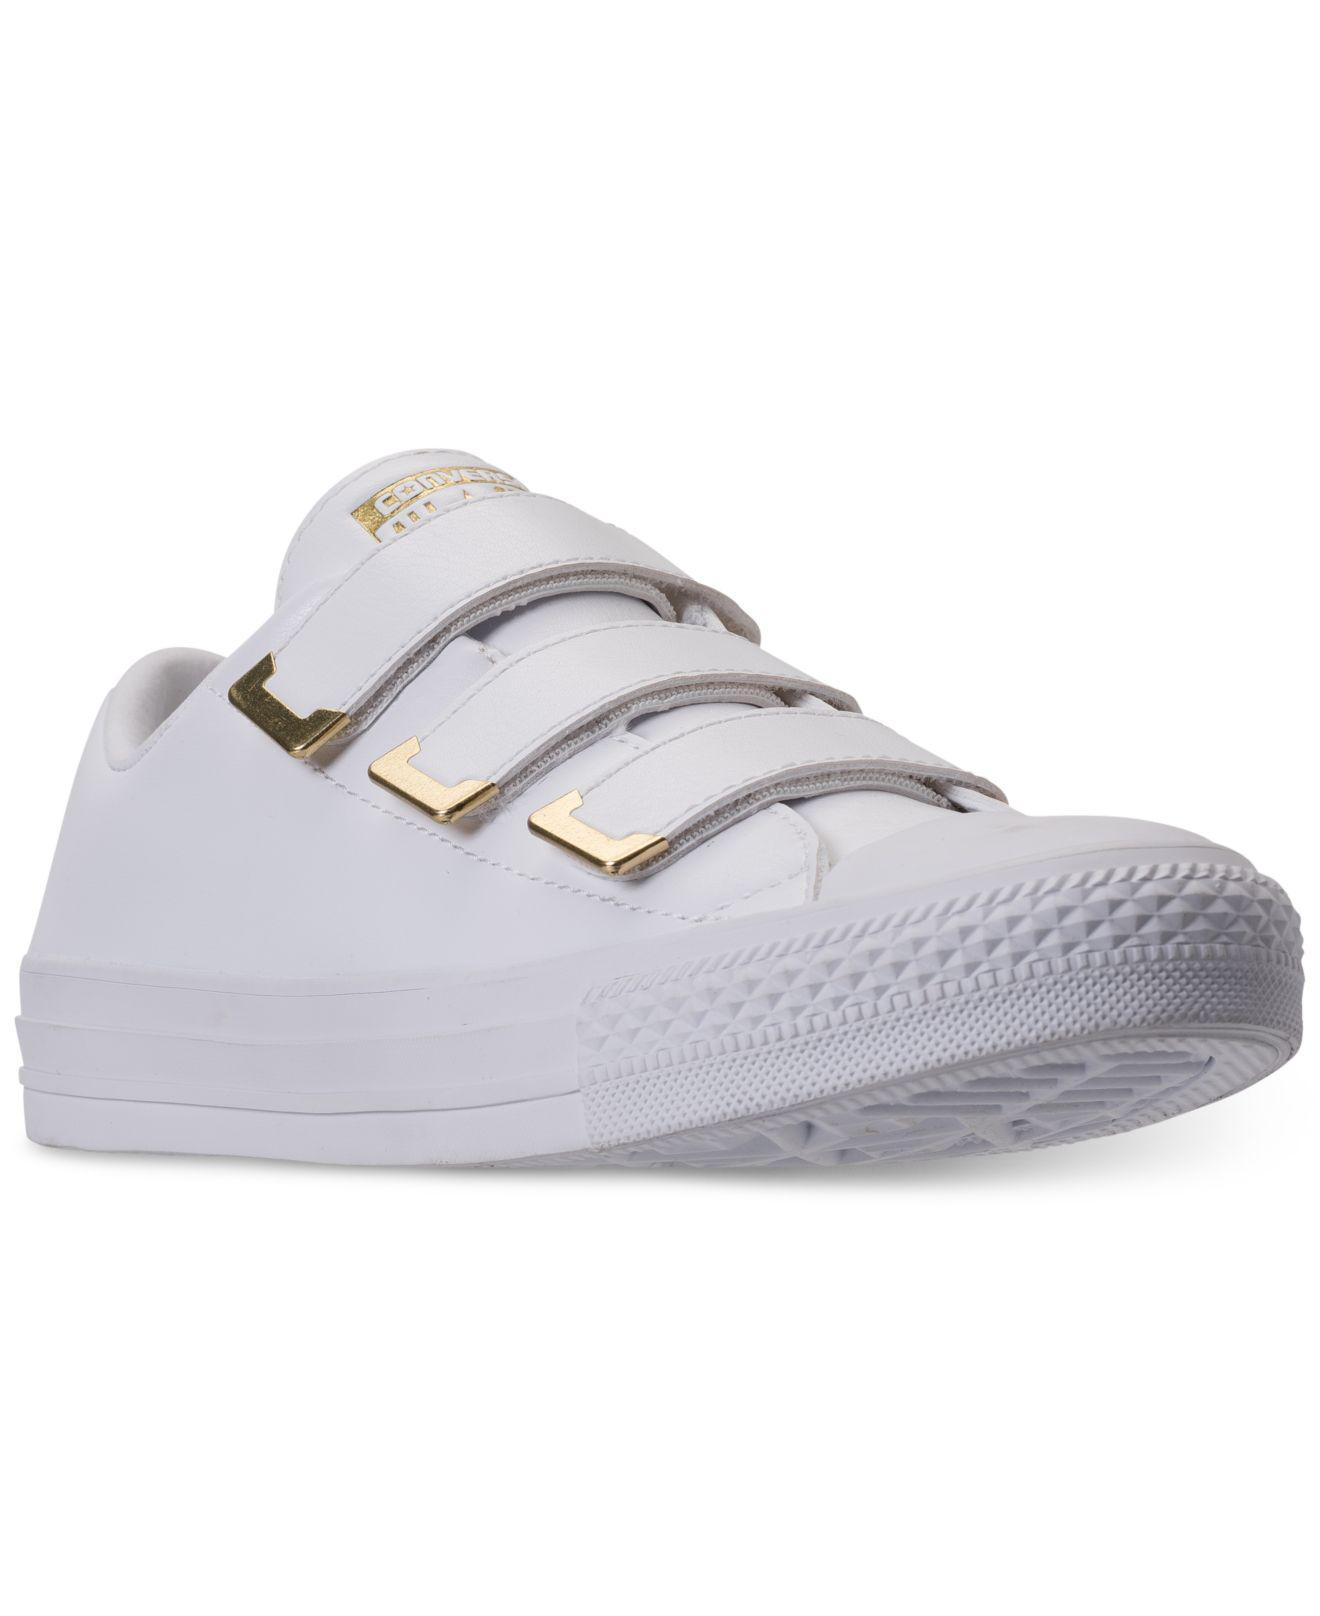 a057a9ab3616 Gallery. Previously sold at  Macy s · Women s Converse Chuck Taylor ...